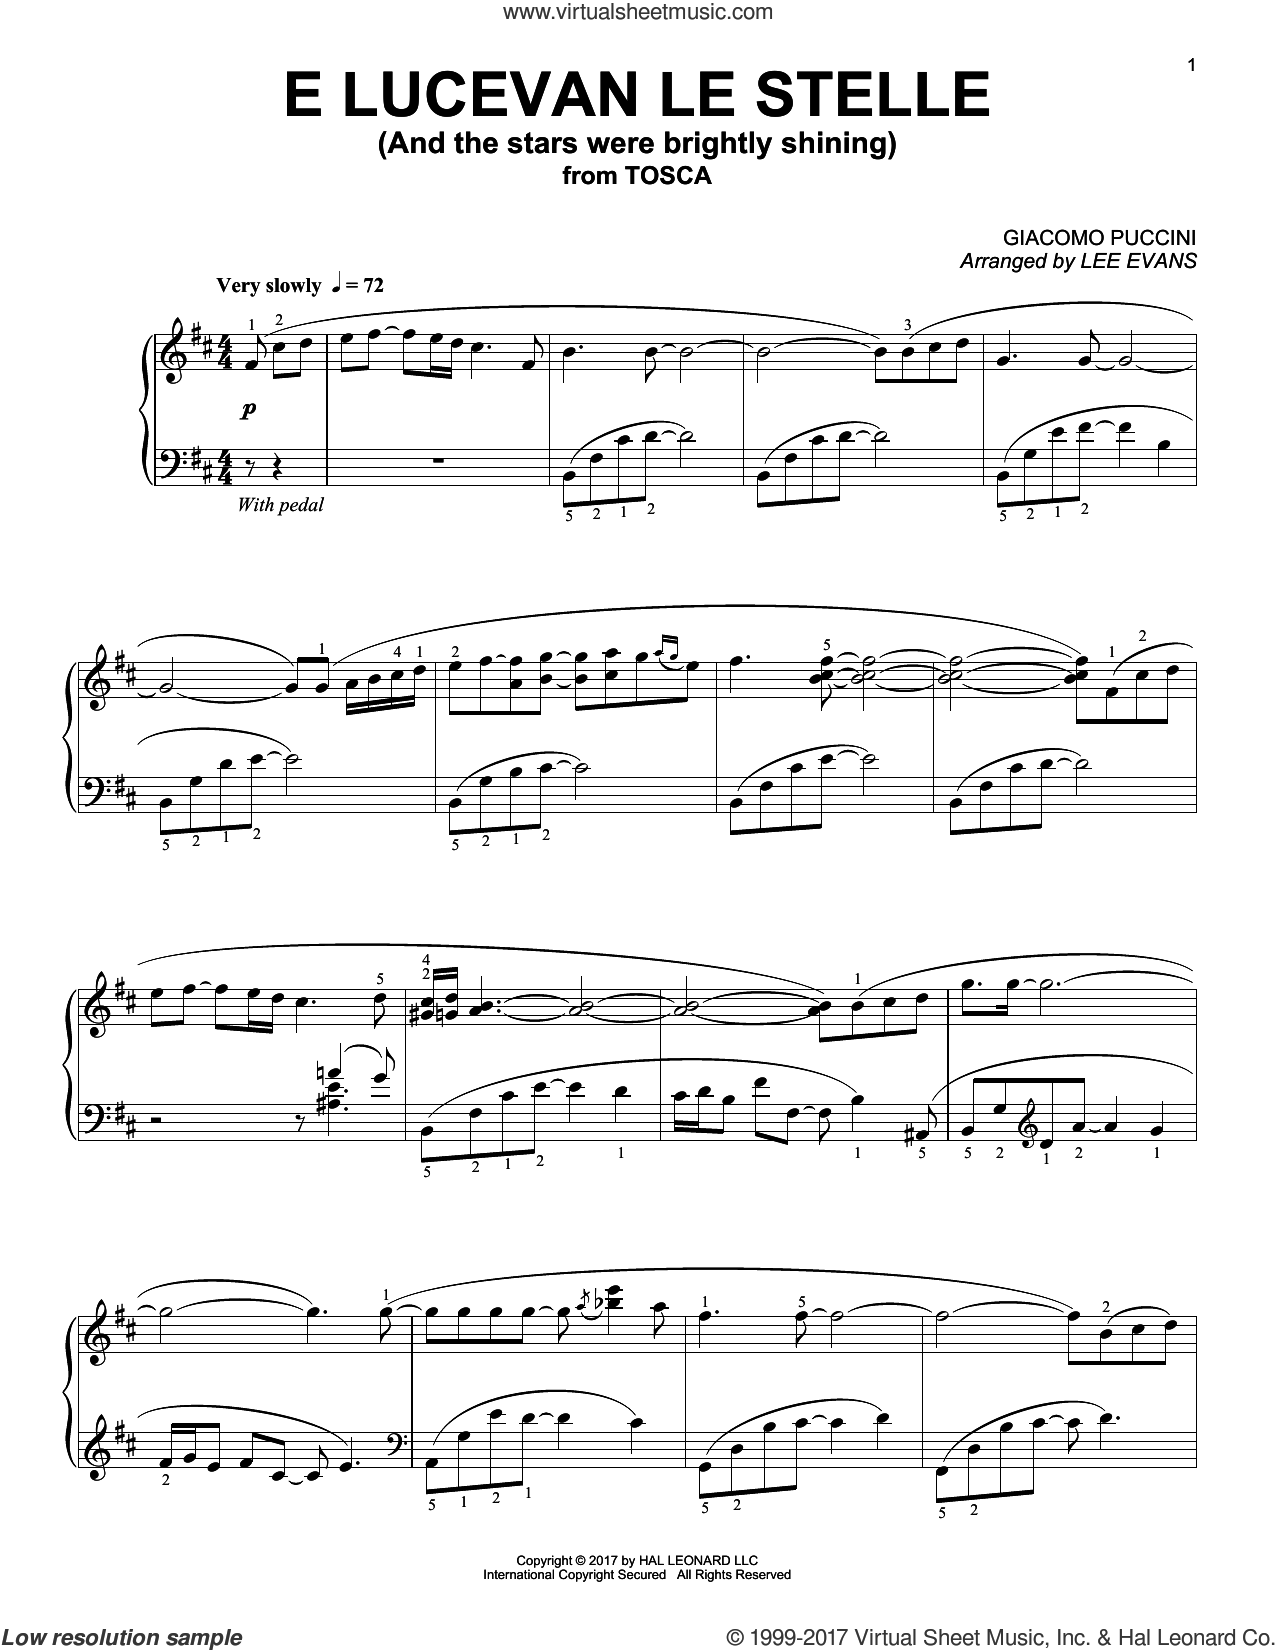 E lucevan le stelle from Tosca (Puccini) sheet music for piano solo by Giacomo Puccini and Lee Evans. Score Image Preview.